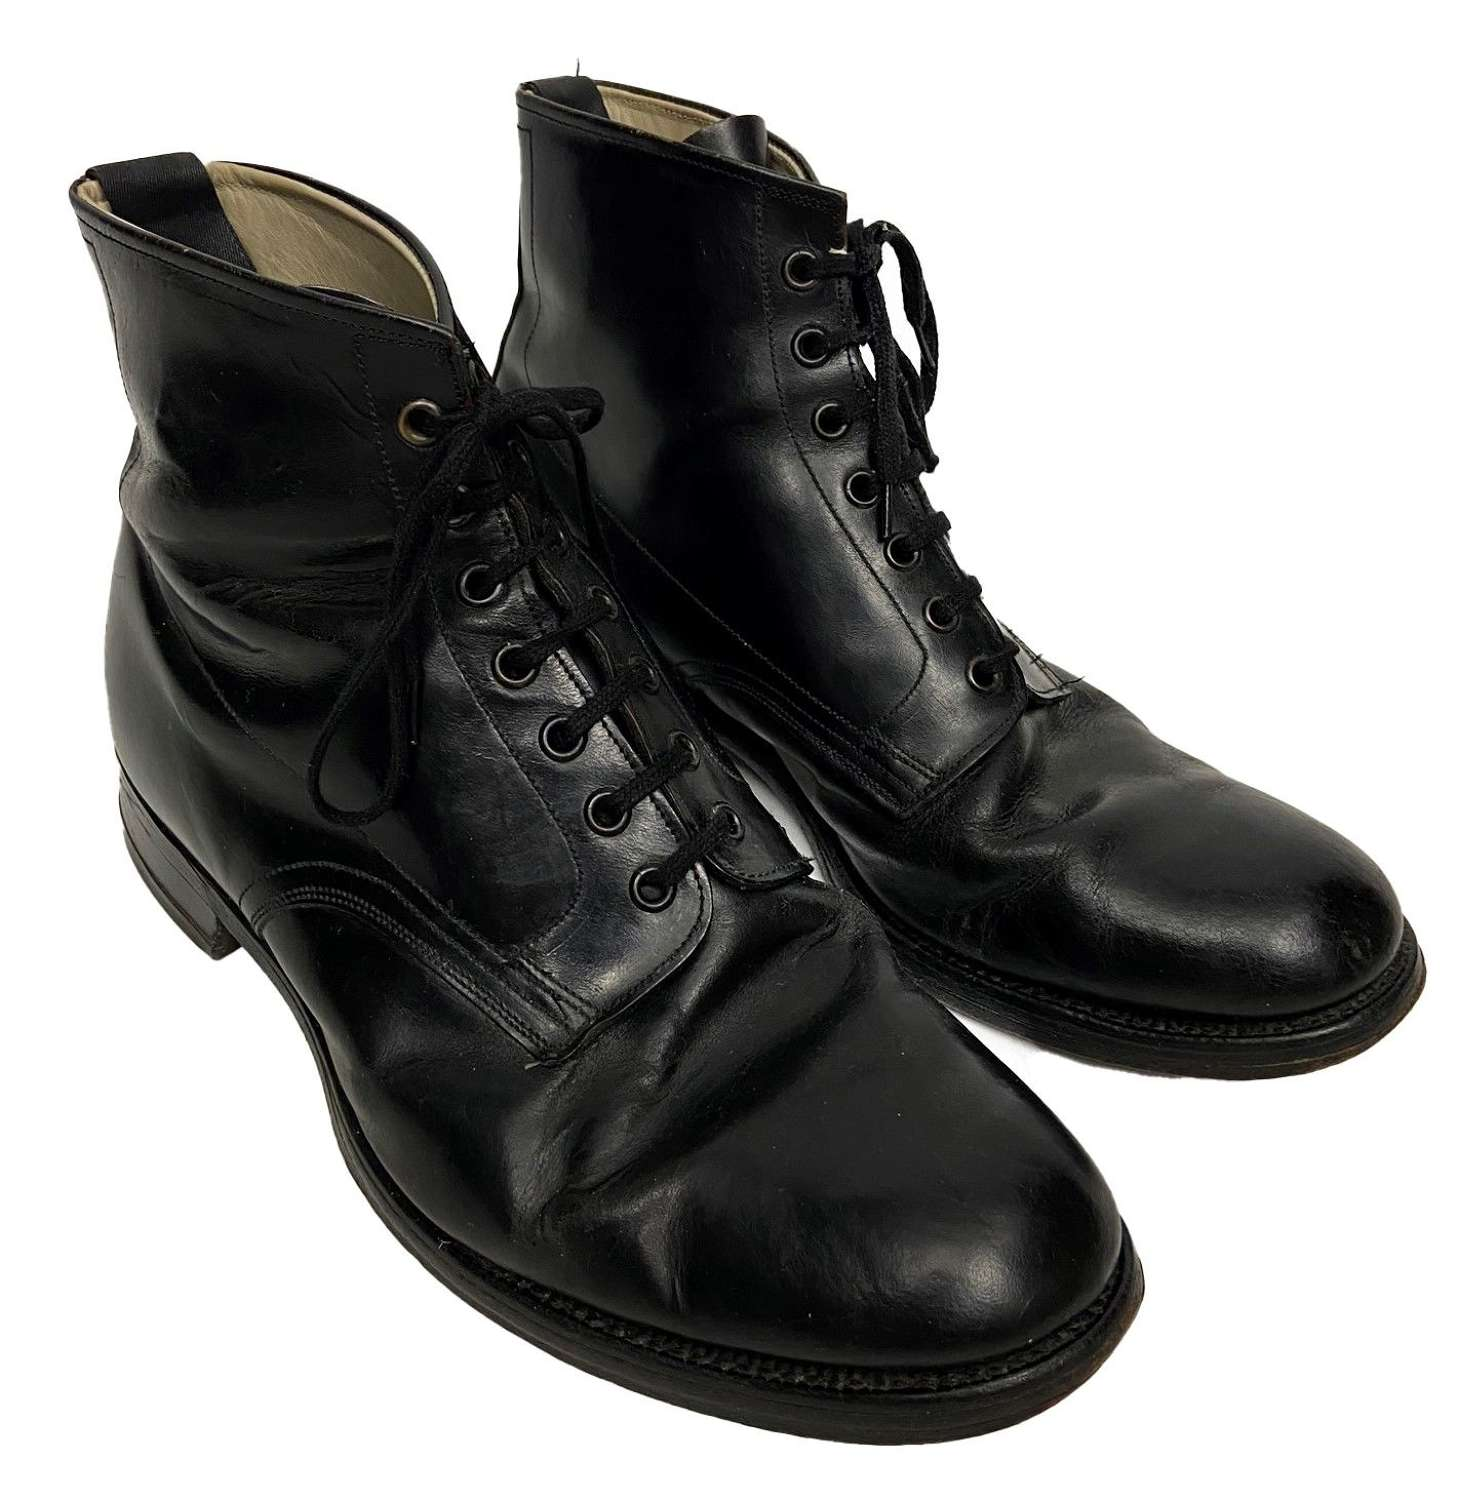 Original 1950s Black Leather GPO Post Officer Works Boots - Size 10